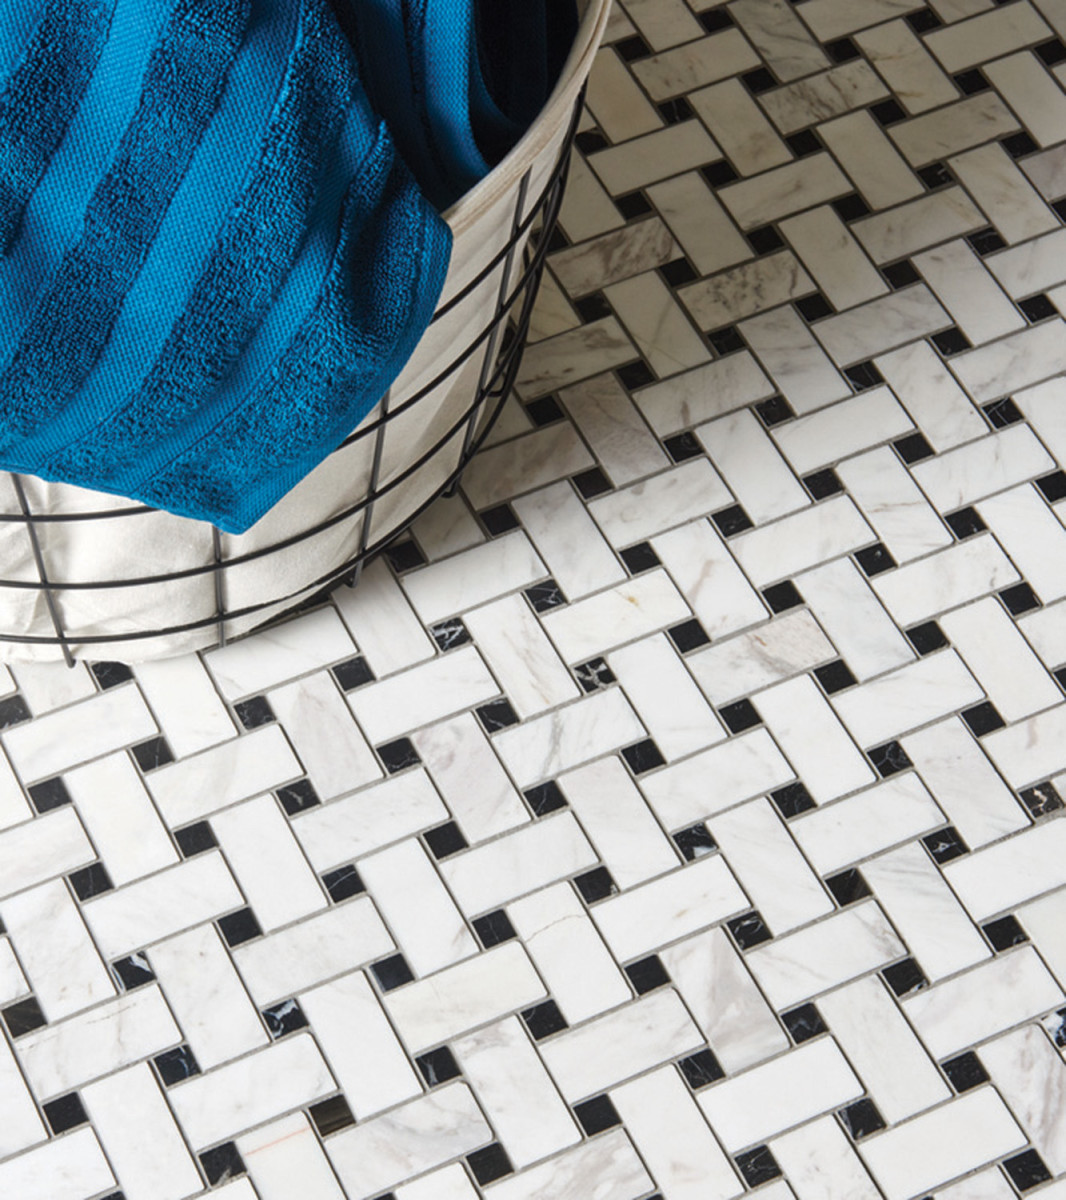 Historic mosaic patterns for serviceable floors design for the a basketweave mosaic floor in polished marble from original style updates the classic black and white dailygadgetfo Choice Image